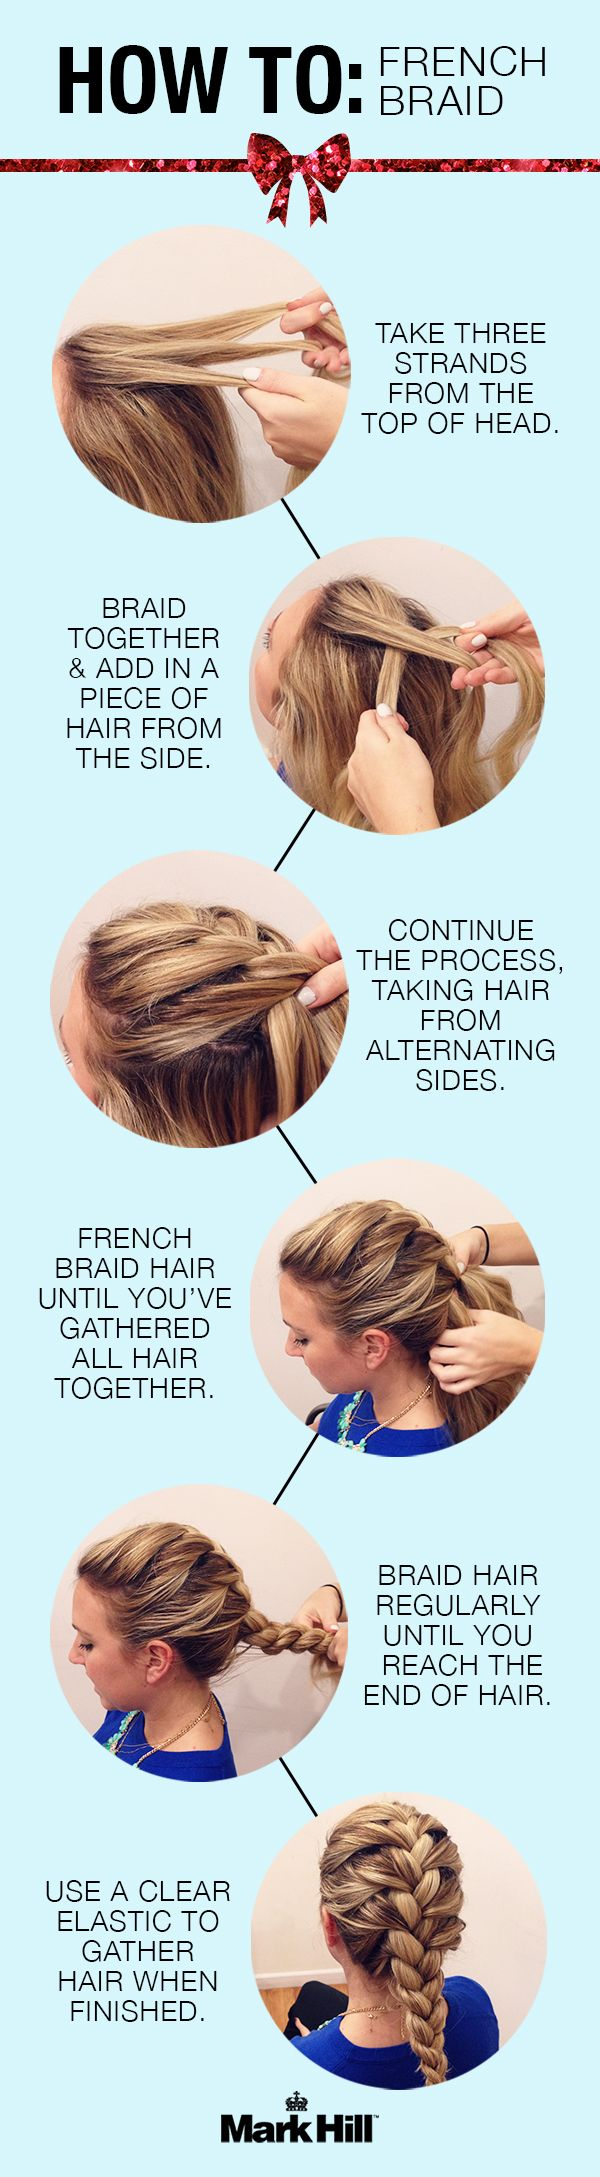 Get Back To The Basics With This Easy French Braid Tutorial